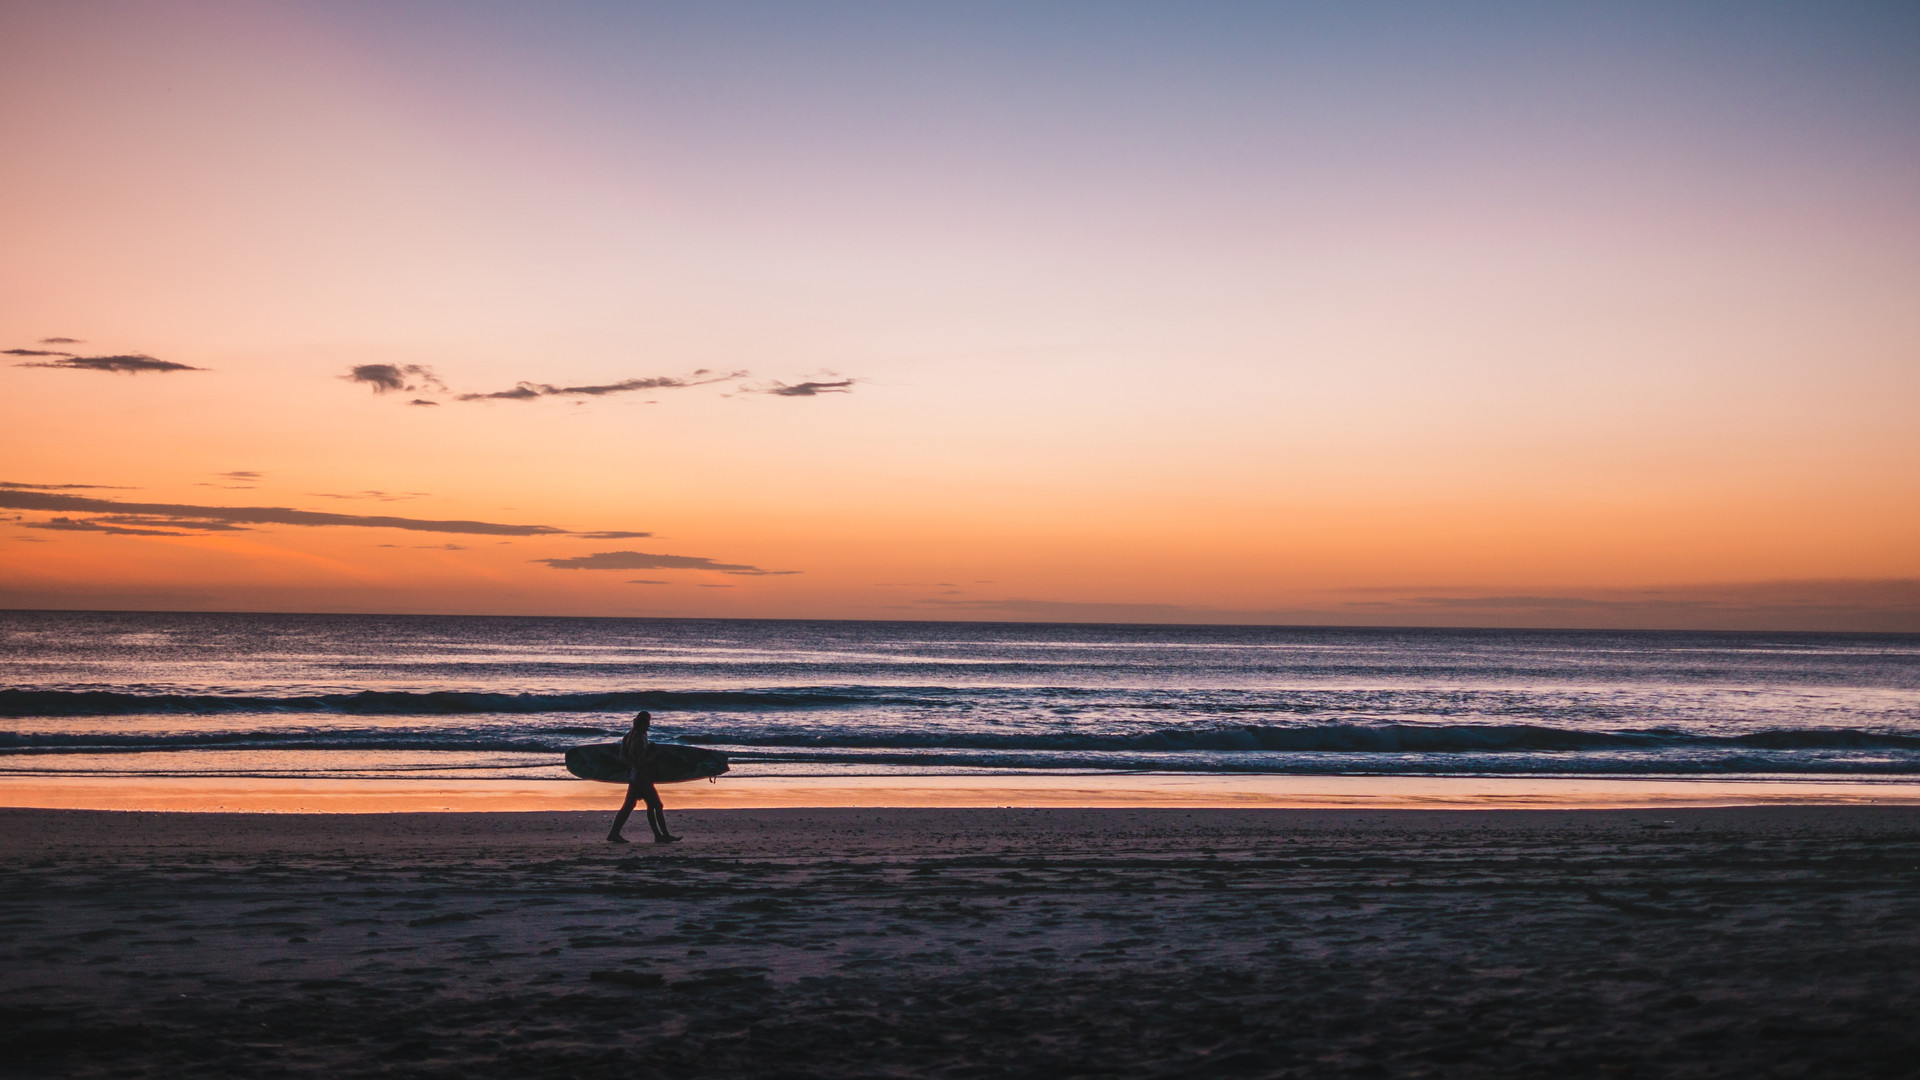 Surfer at the beach at sunset in Nicaragua